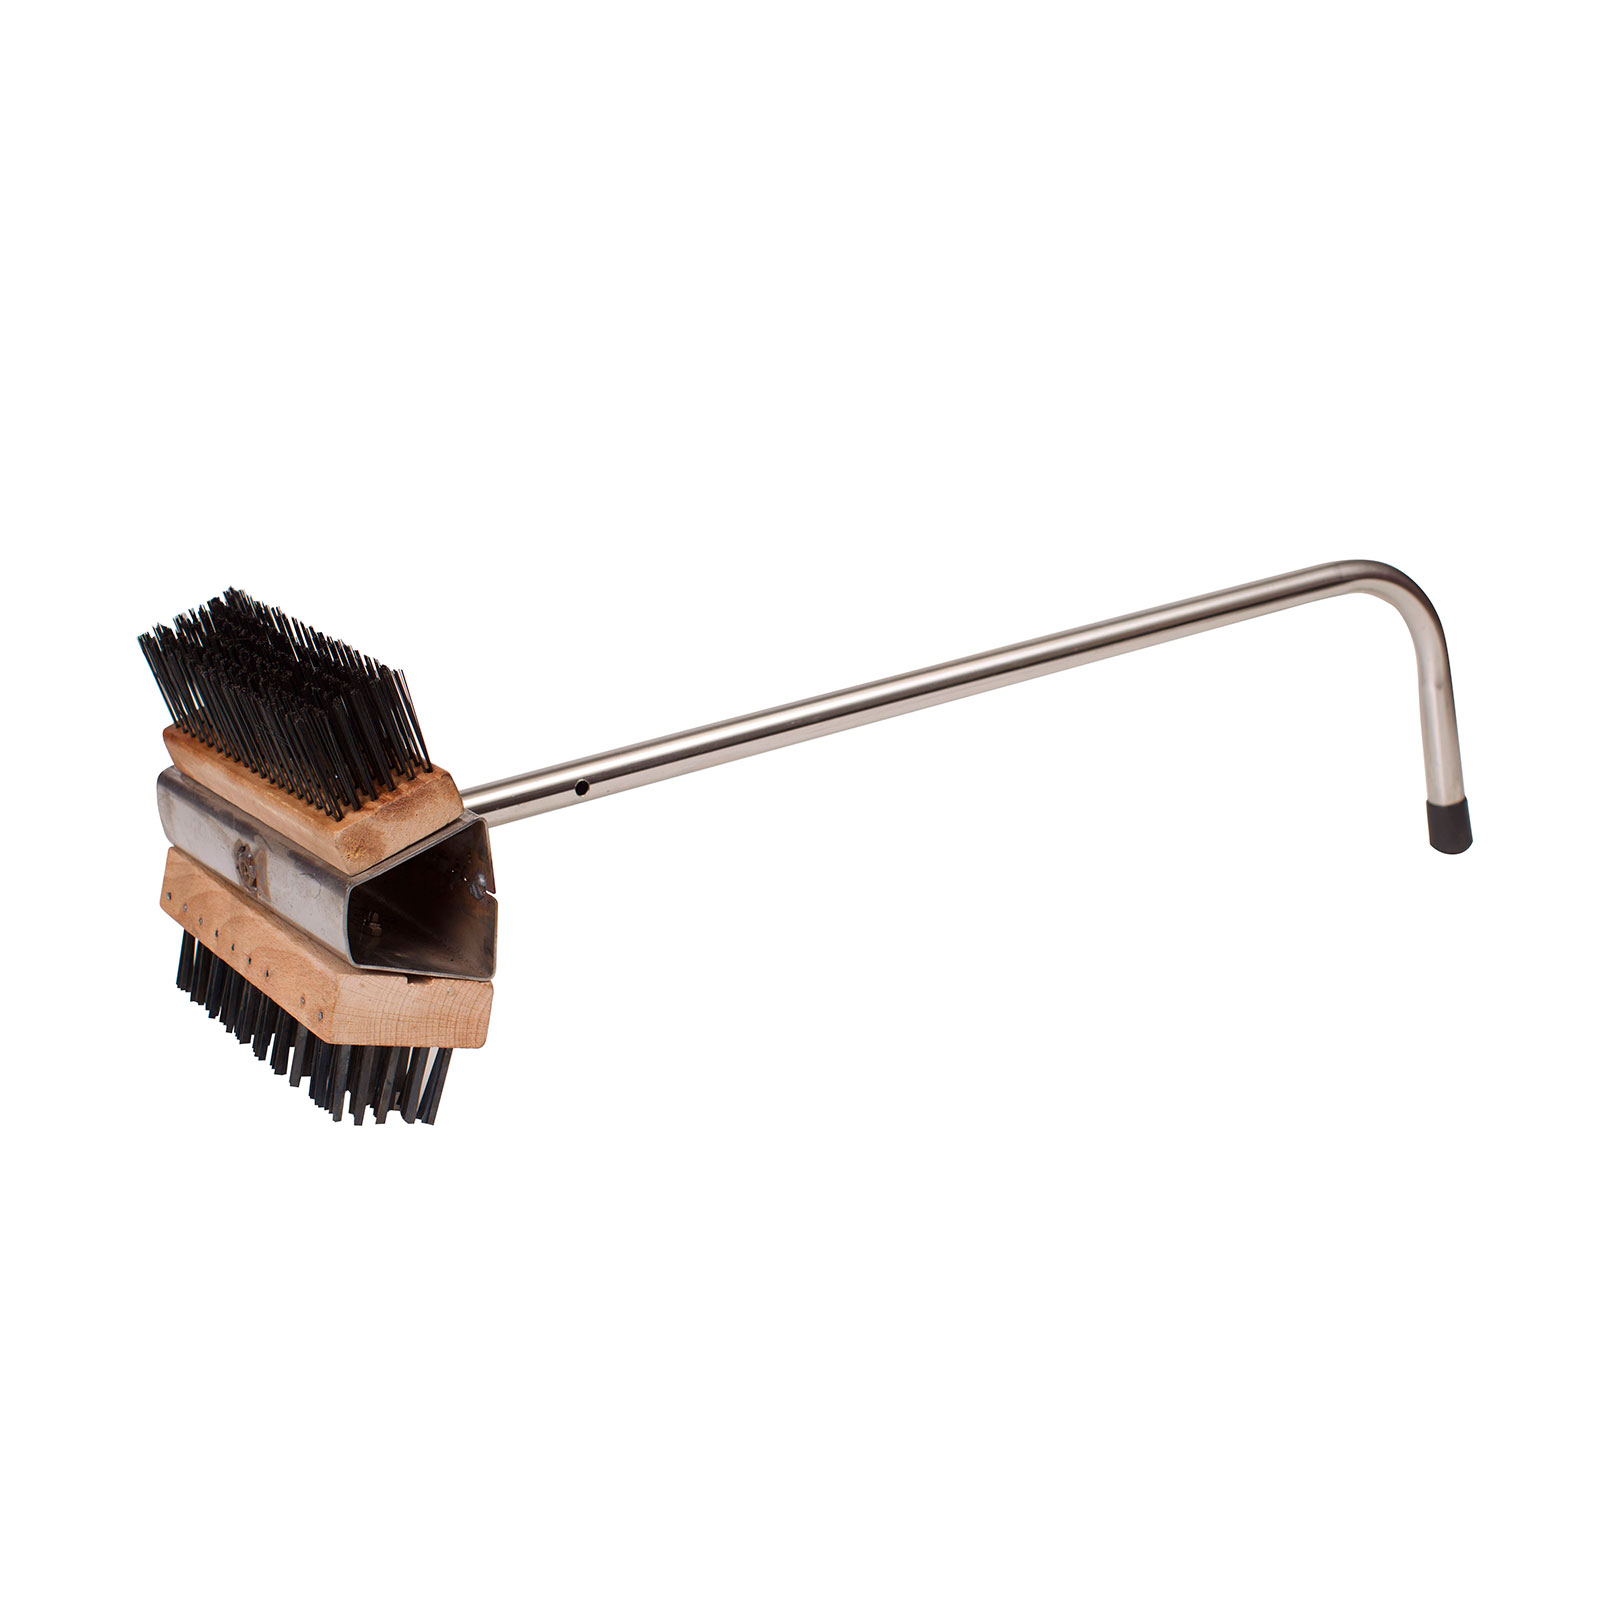 Winco BR-21 brush, wire